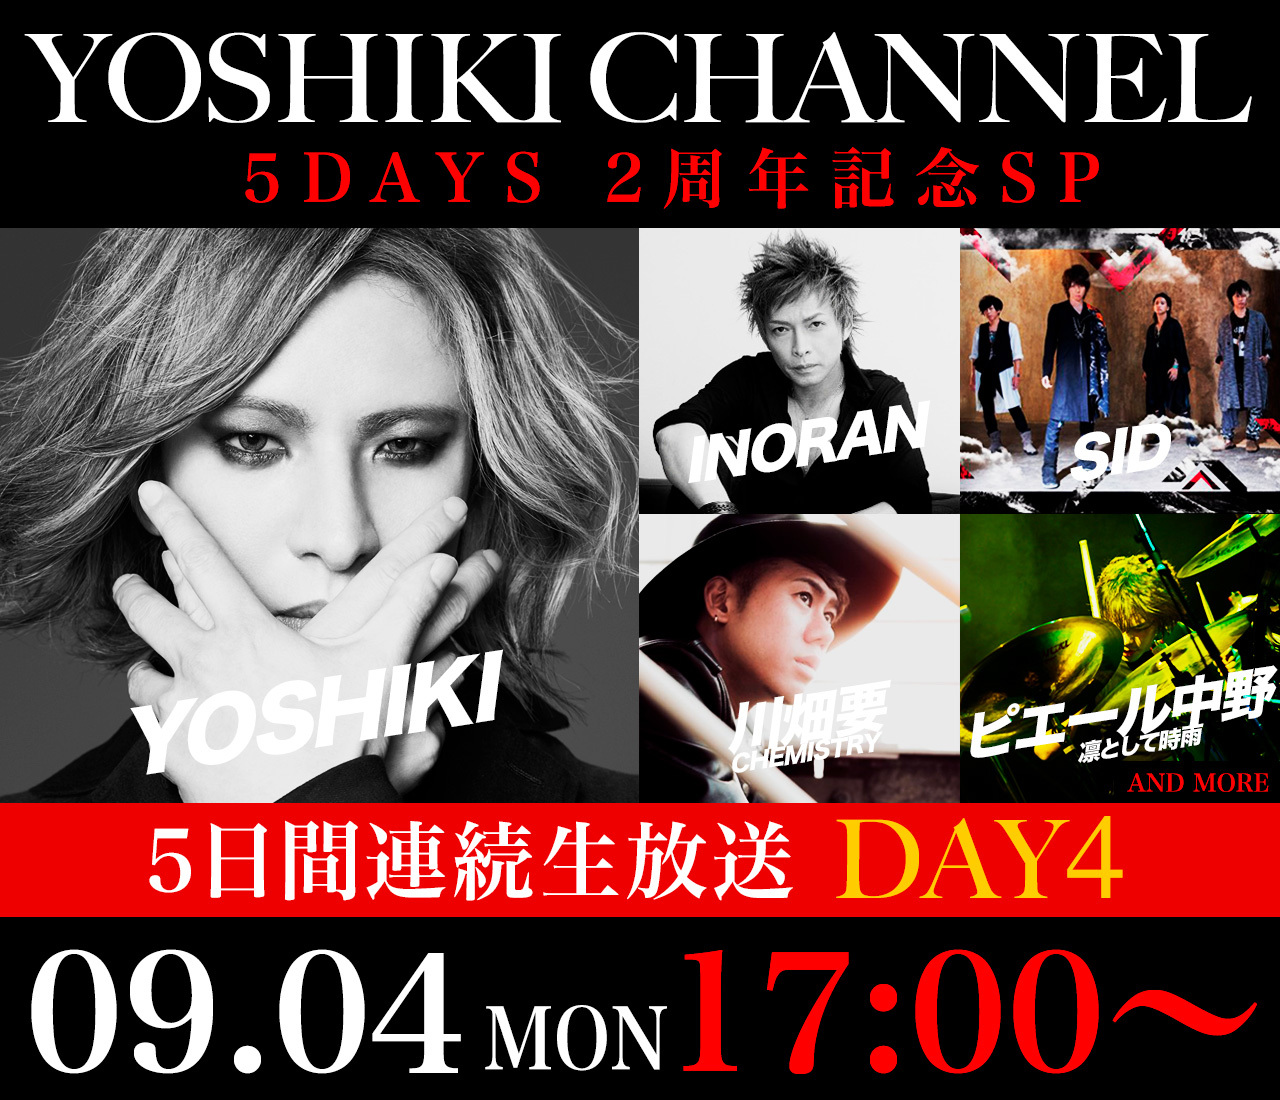 YOSHIKI CHANNEL『5DAYS 2周年記念SP』